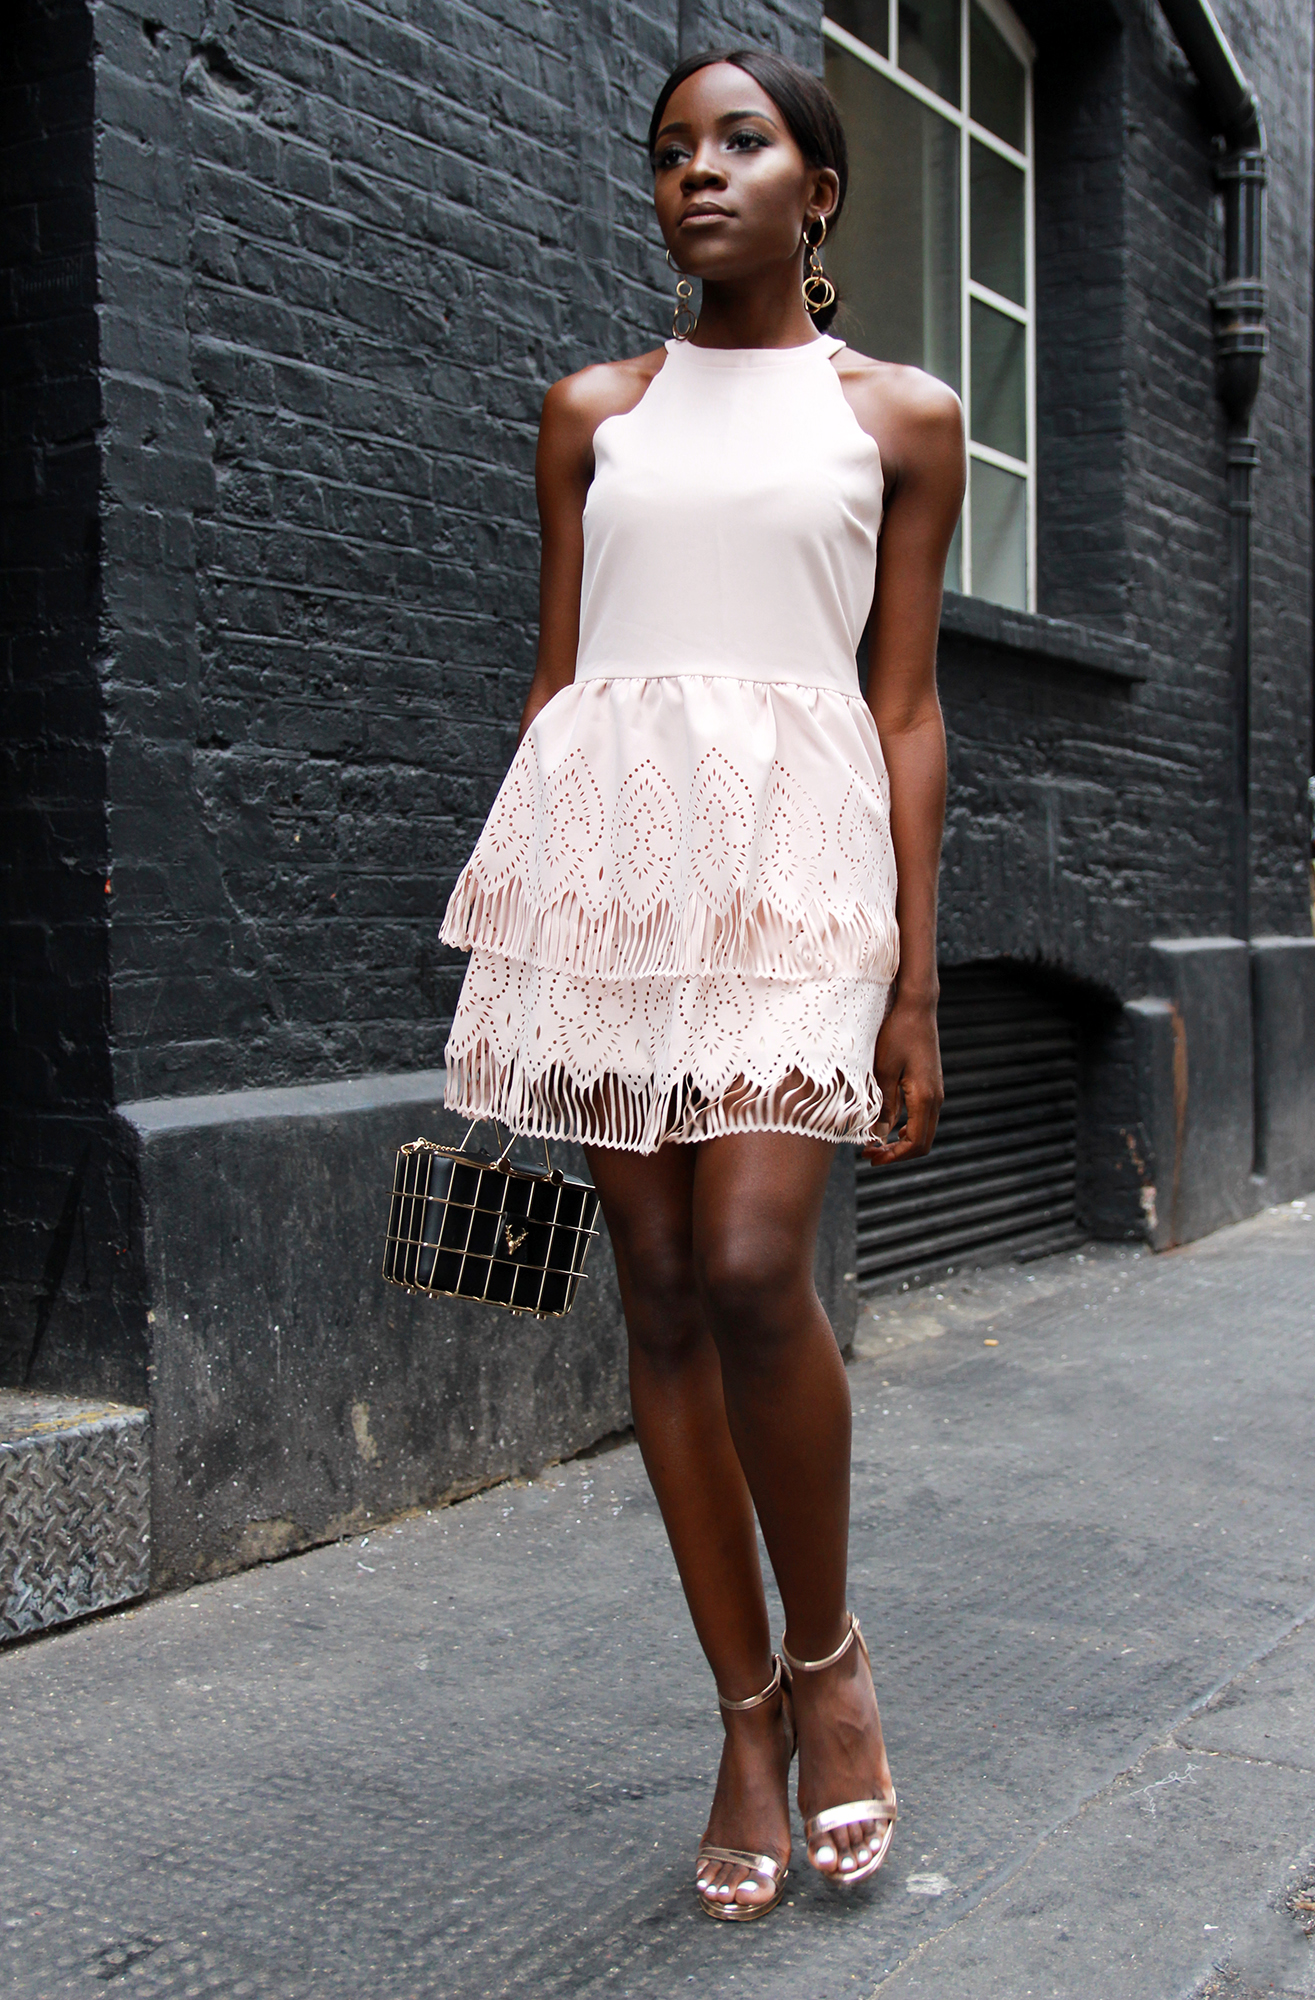 perfect pink summer dress for an evening out with laser cut details